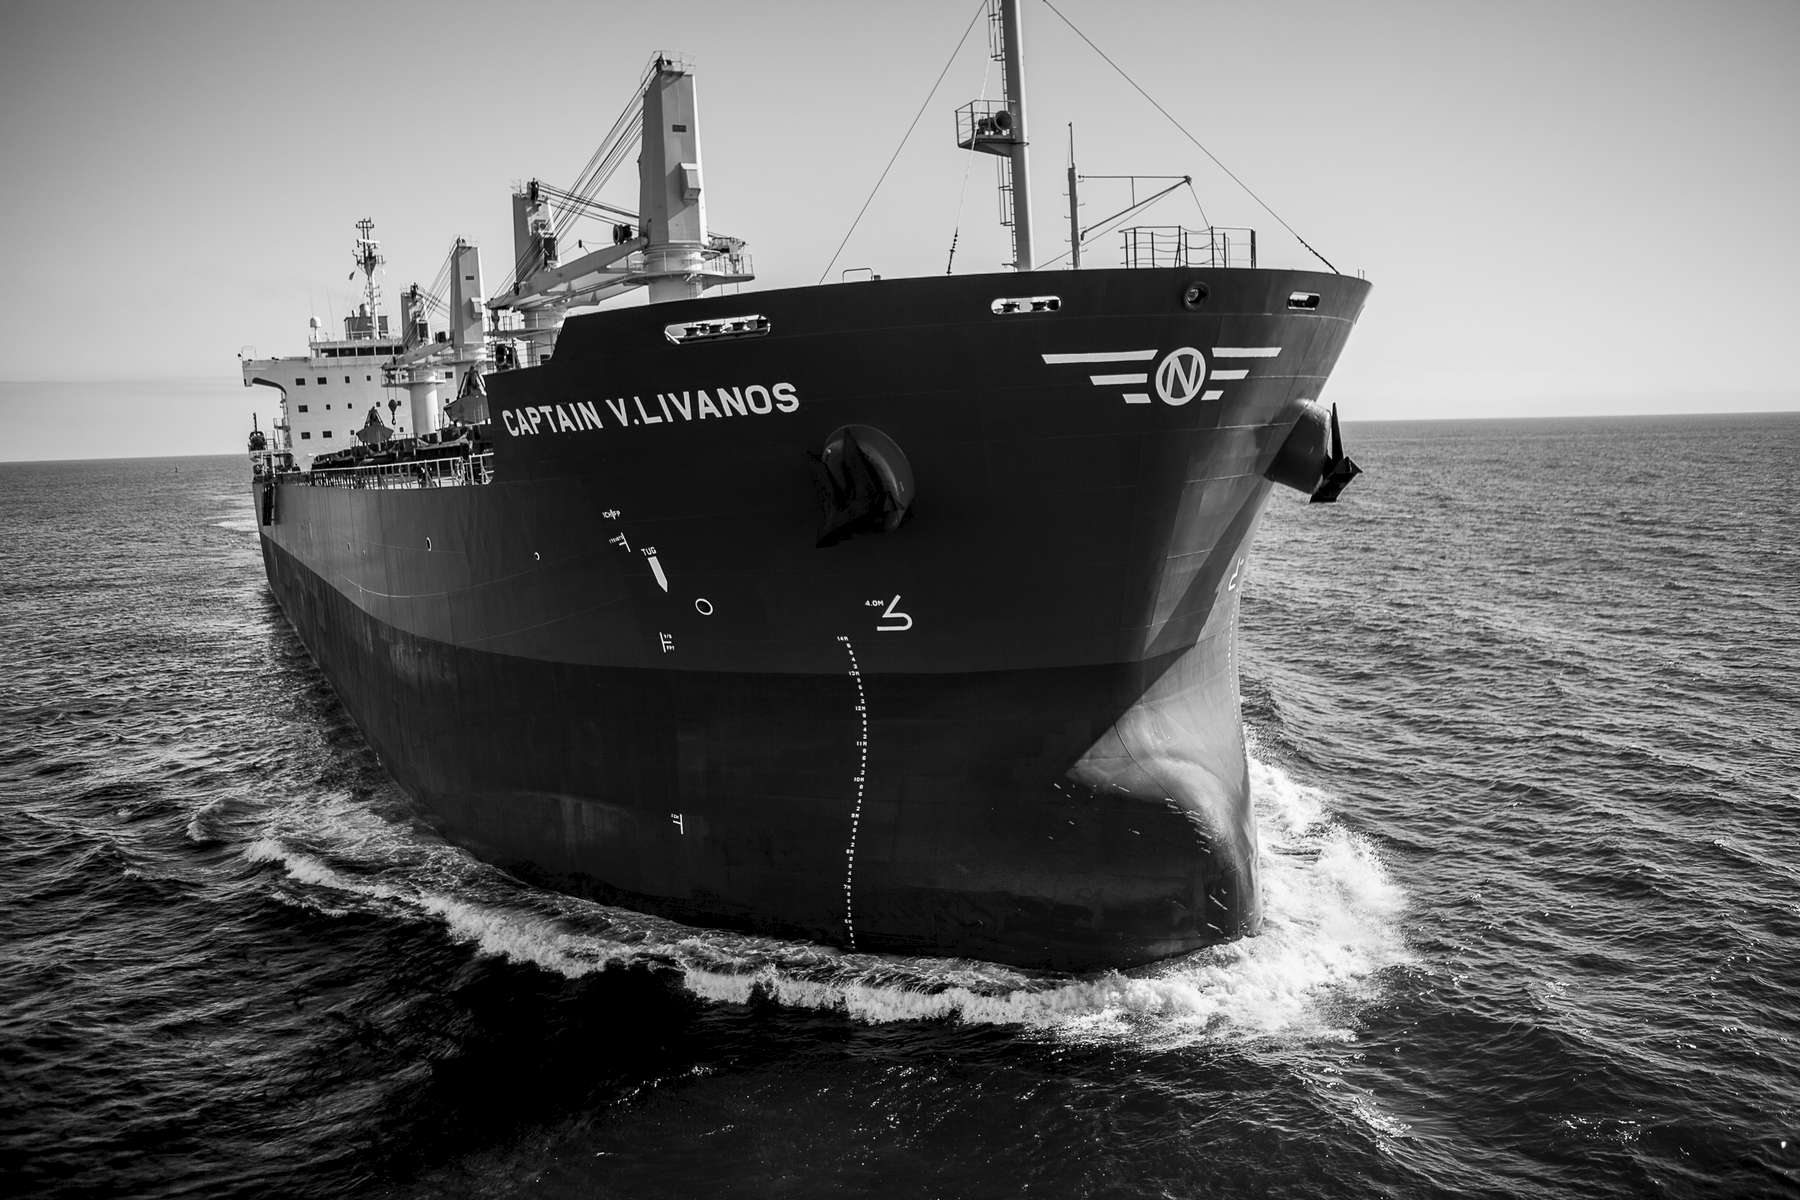 m/v Captain V. Livanos arrives maiden voyage Los Angeles